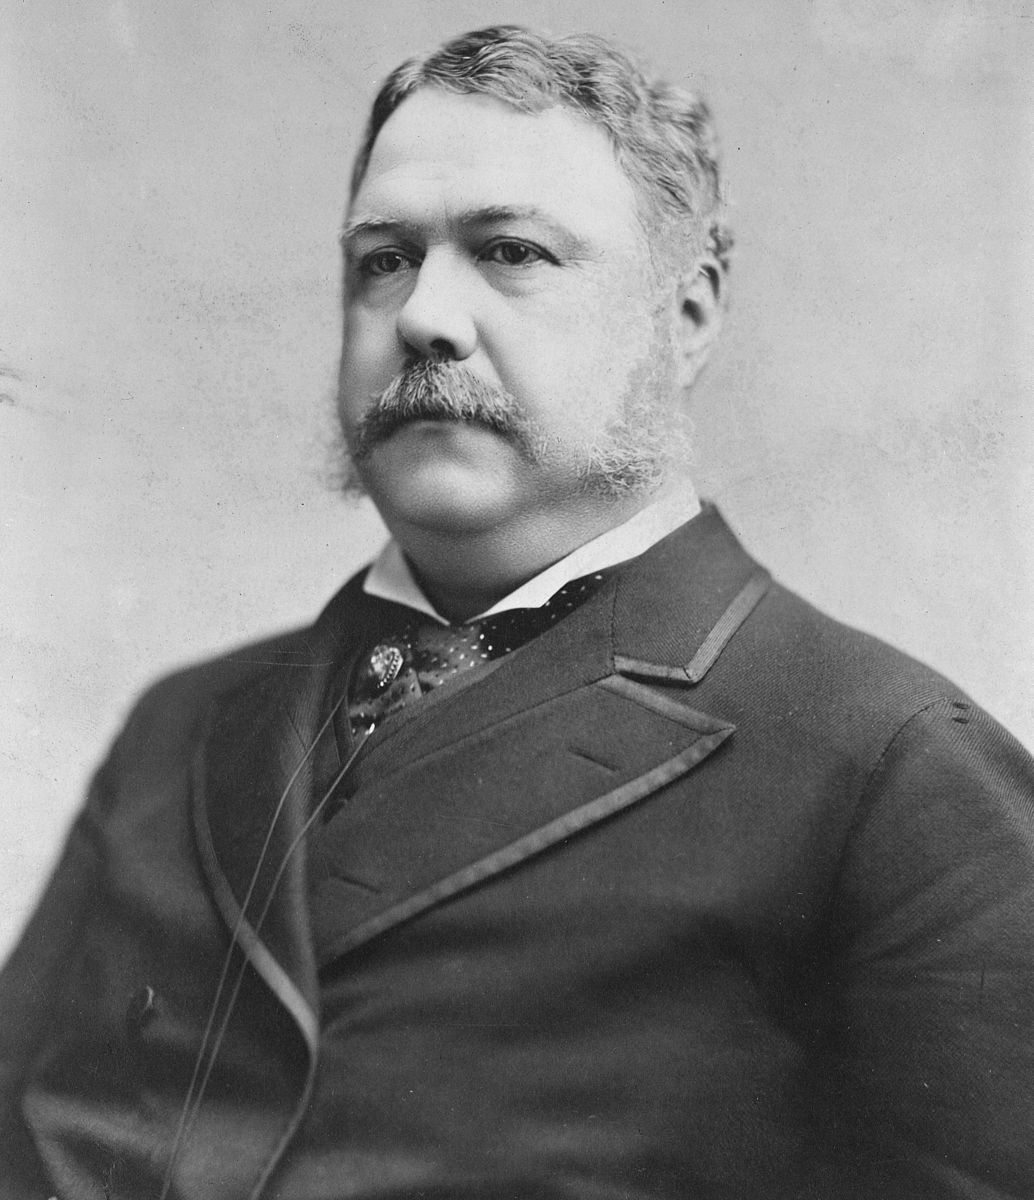 Science Tells Us That Chester A. Arthur is the Most Forgotten U.S. President